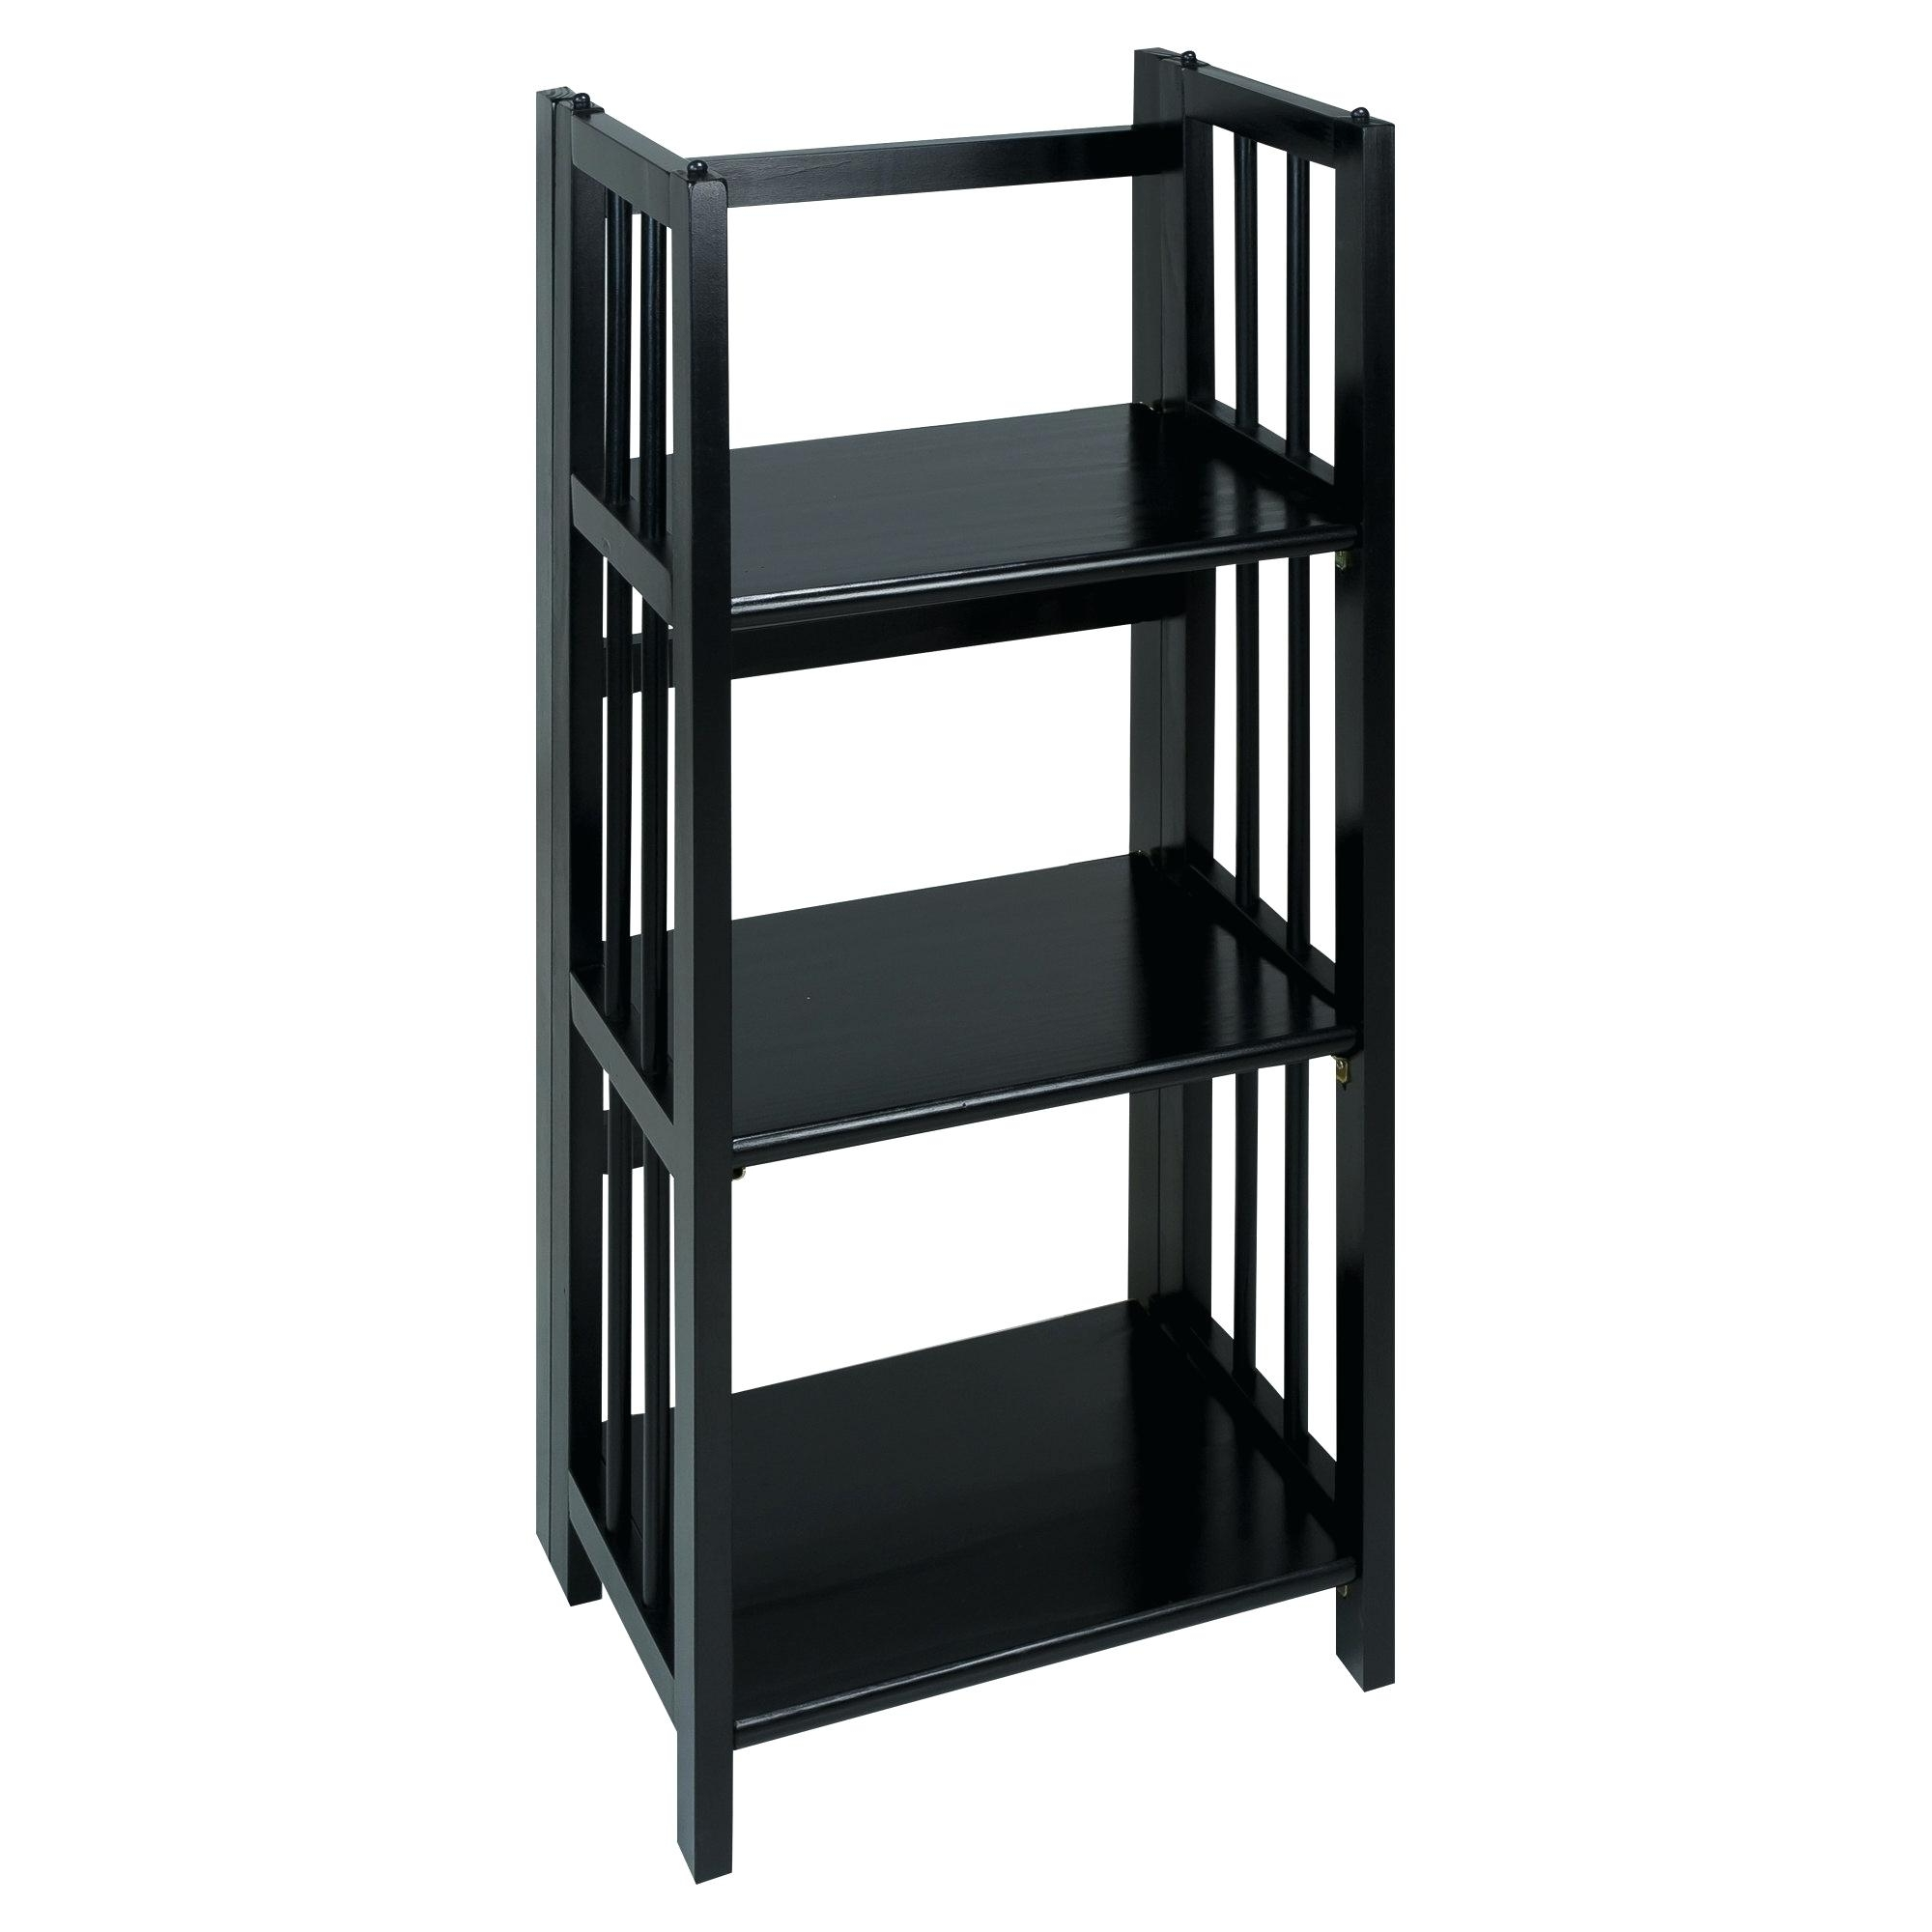 40 Inch Wide Bookcases Intended For Most Popular 40 Inch Wide Bookcase 496987 40 Cm Wide Bookcase 40 Cm Wide White (View 2 of 15)